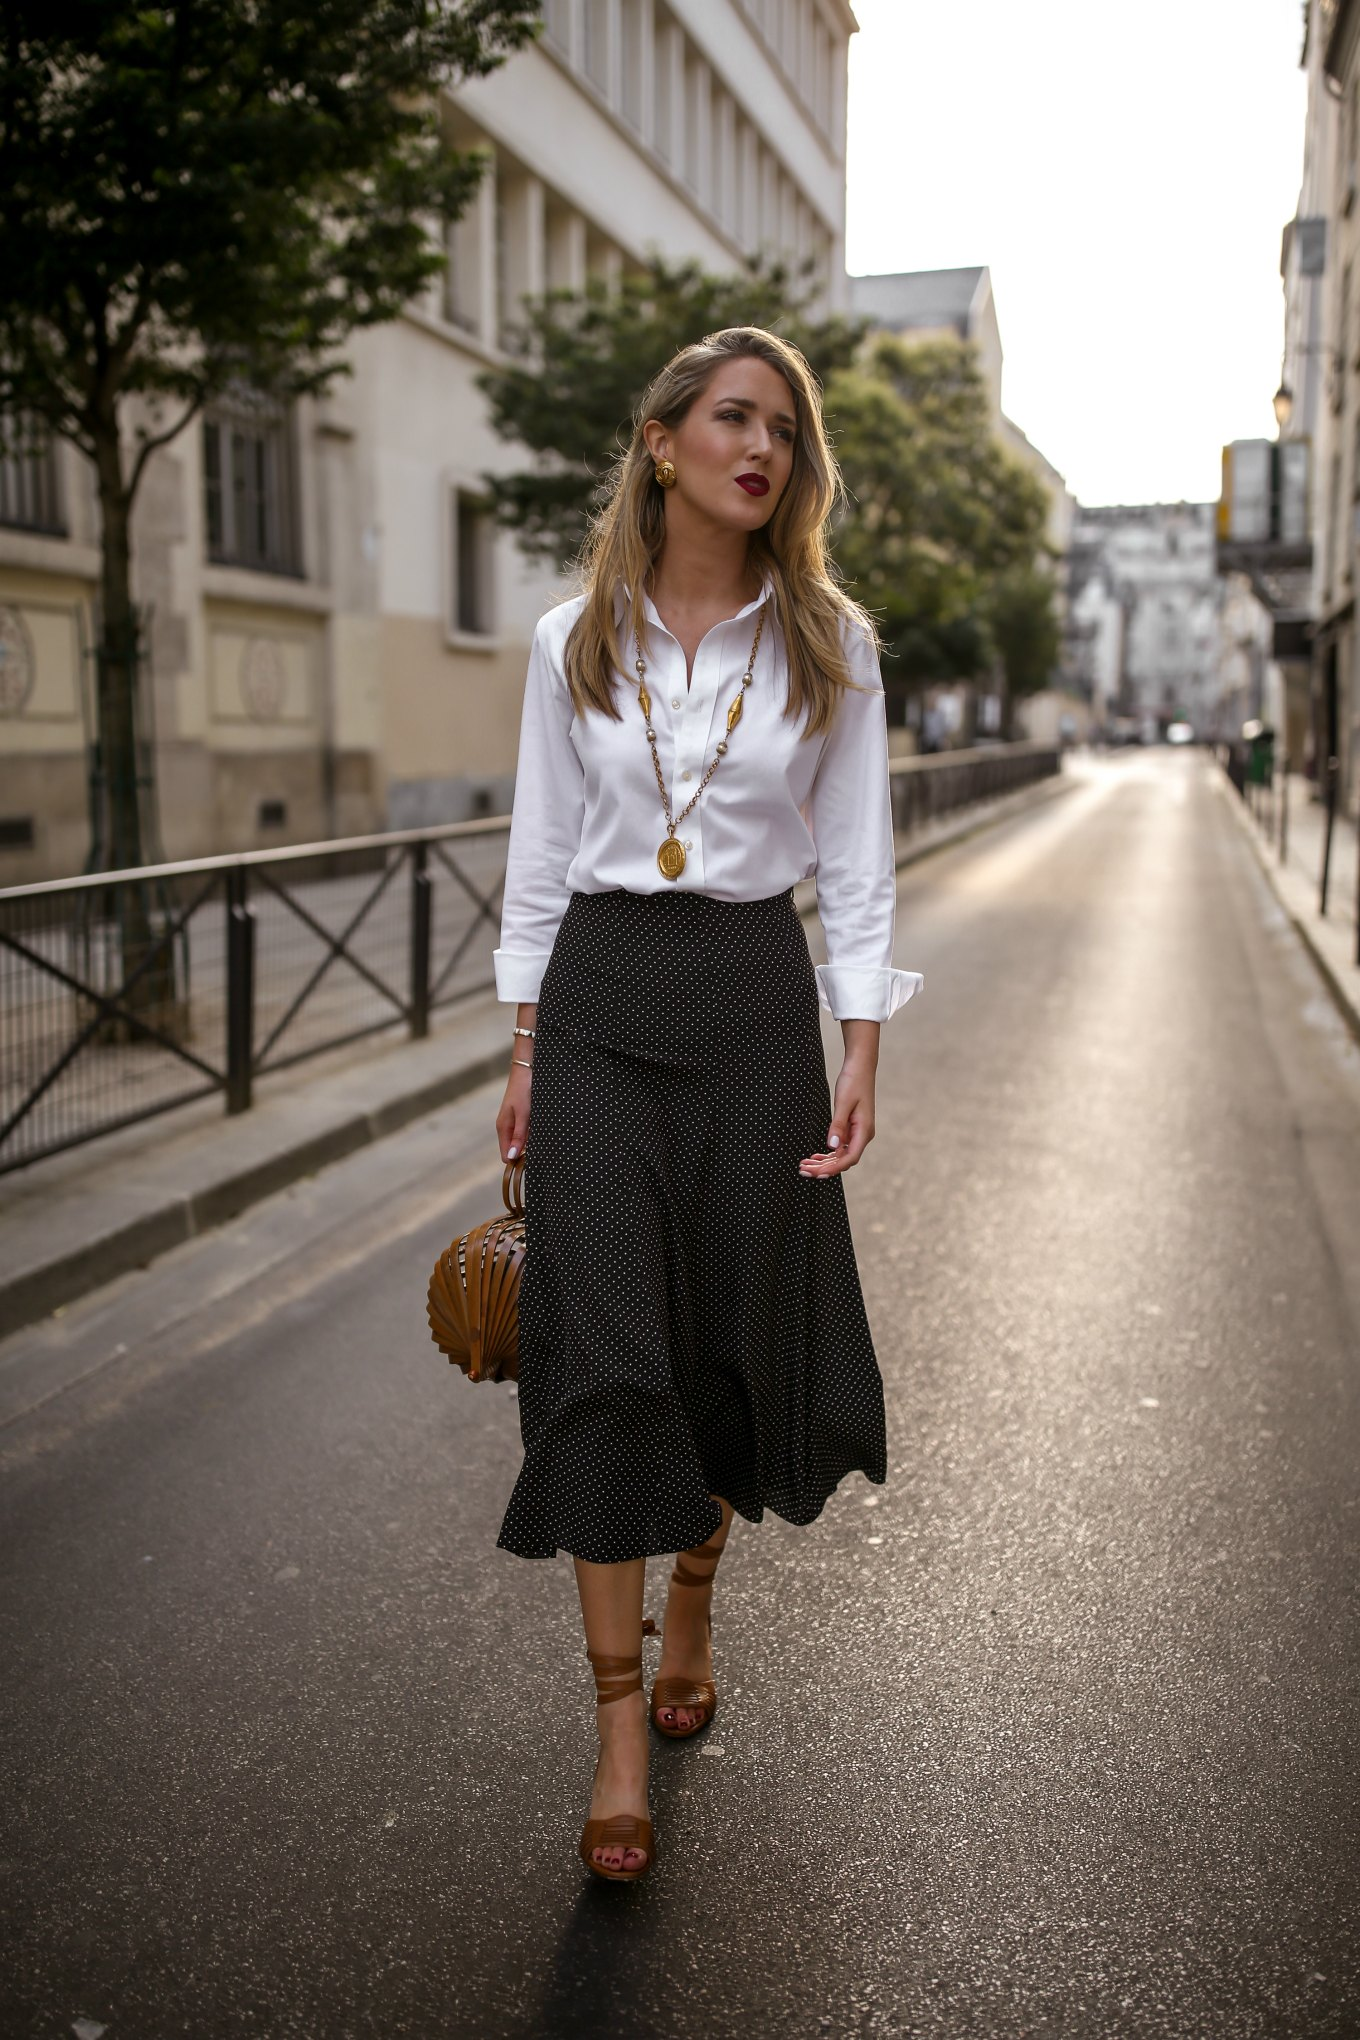 polka-dot-midi-skirt-white-affordable-button-down-shirt-uniqlo-summer-workwear-outfit-heat2-680x1020@2x